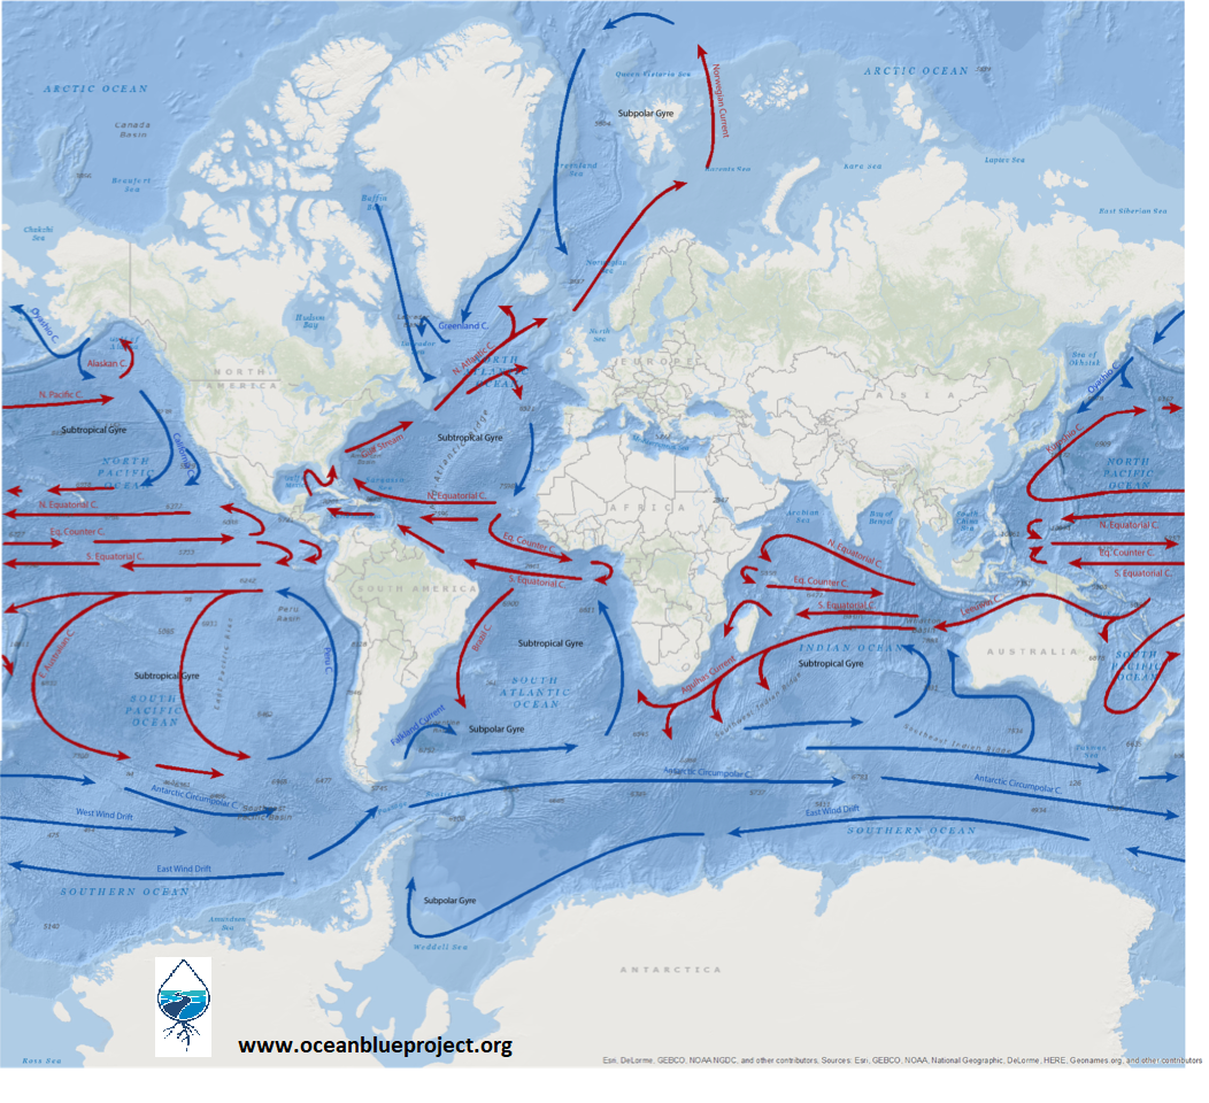 Ocean Current Maps of the north pacific ocean, ocean surface ... on atlantic ocean map, pacific ocean weather live, south west pacific ocean map, pacific ocean states, pacific ocean chart, canada pacific ocean map, pacific ocean on canada, pacific ocean map countries, pacific ocean on map of asia, pacific northwest on us map, pacific ocean map printable, pacific ocean on europe map, all pacific ocean map, pacific ocean average depth, indian ocean map, the pacific ocean map, gulf of mexico map, arctic ocean on us map, pacific ocean centered world map, pacific coast on us map,